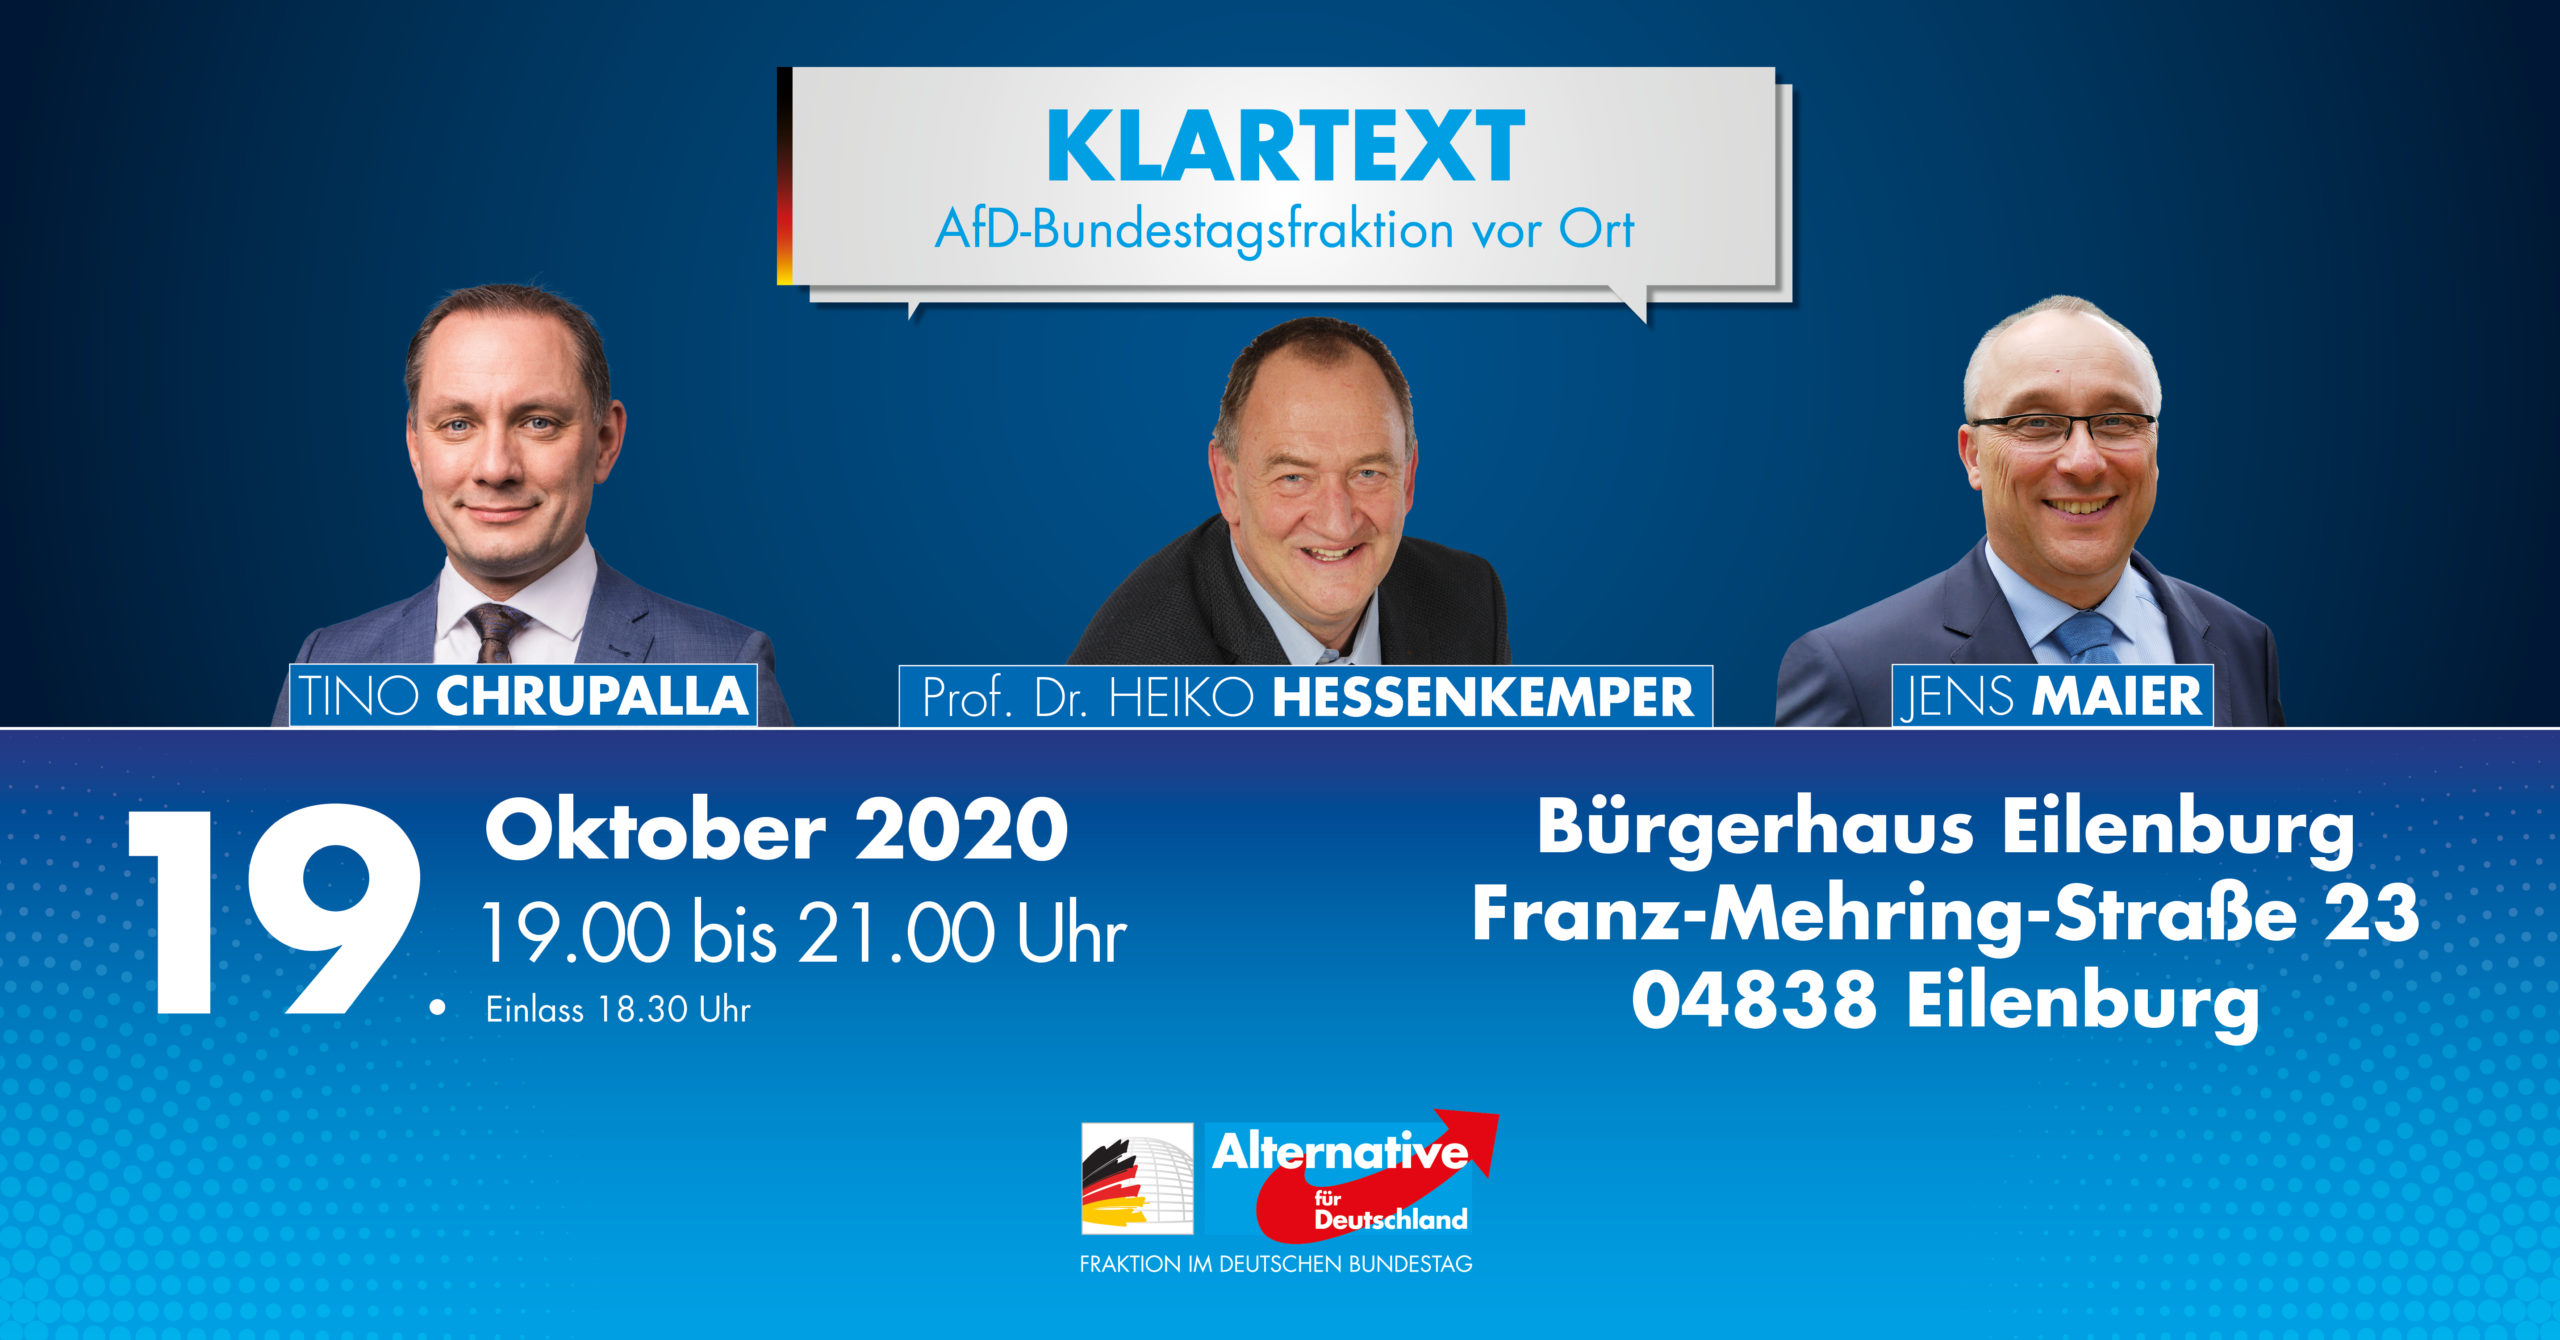 Klartext! Die AfD-Bundestagsfraktion vor Ort in Eilenburg